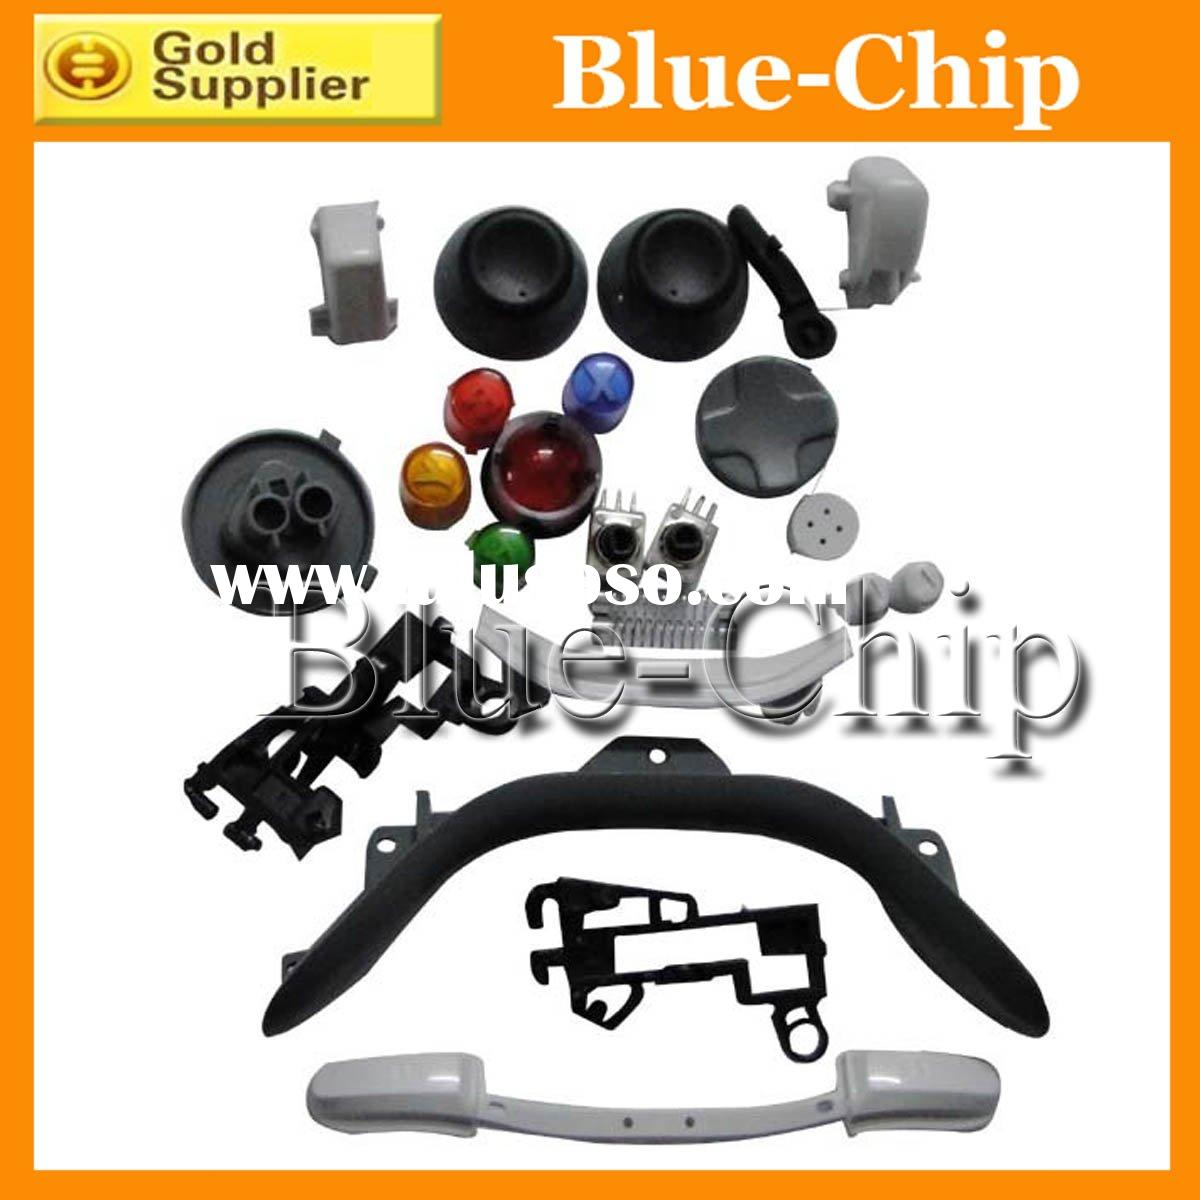 Repair Parts for Xbox360 Controller video game accessories